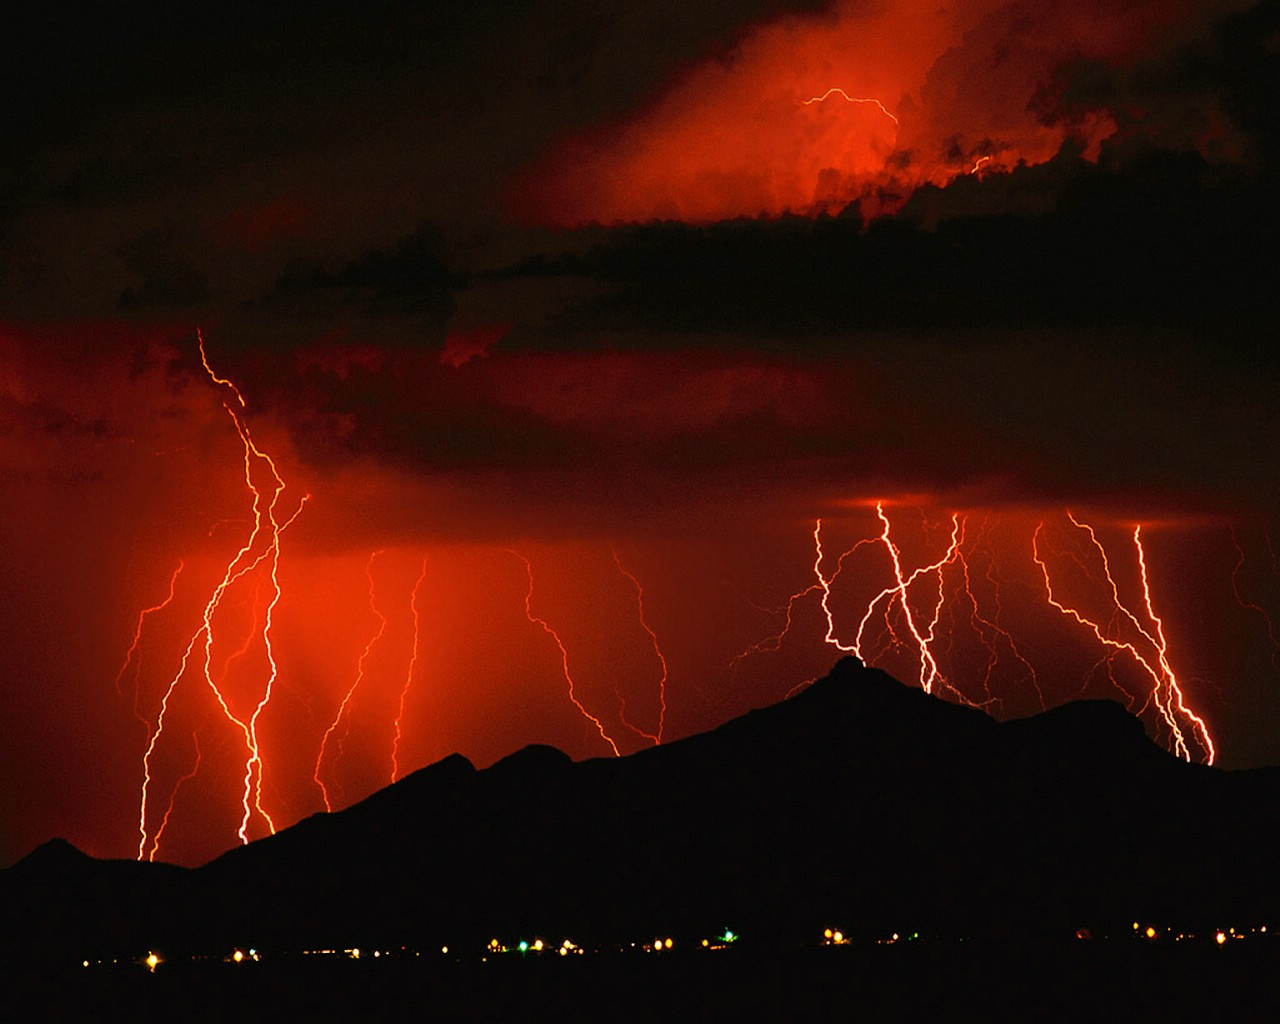 Xmwallpaperscom Wallpaper Storms Lightning Red